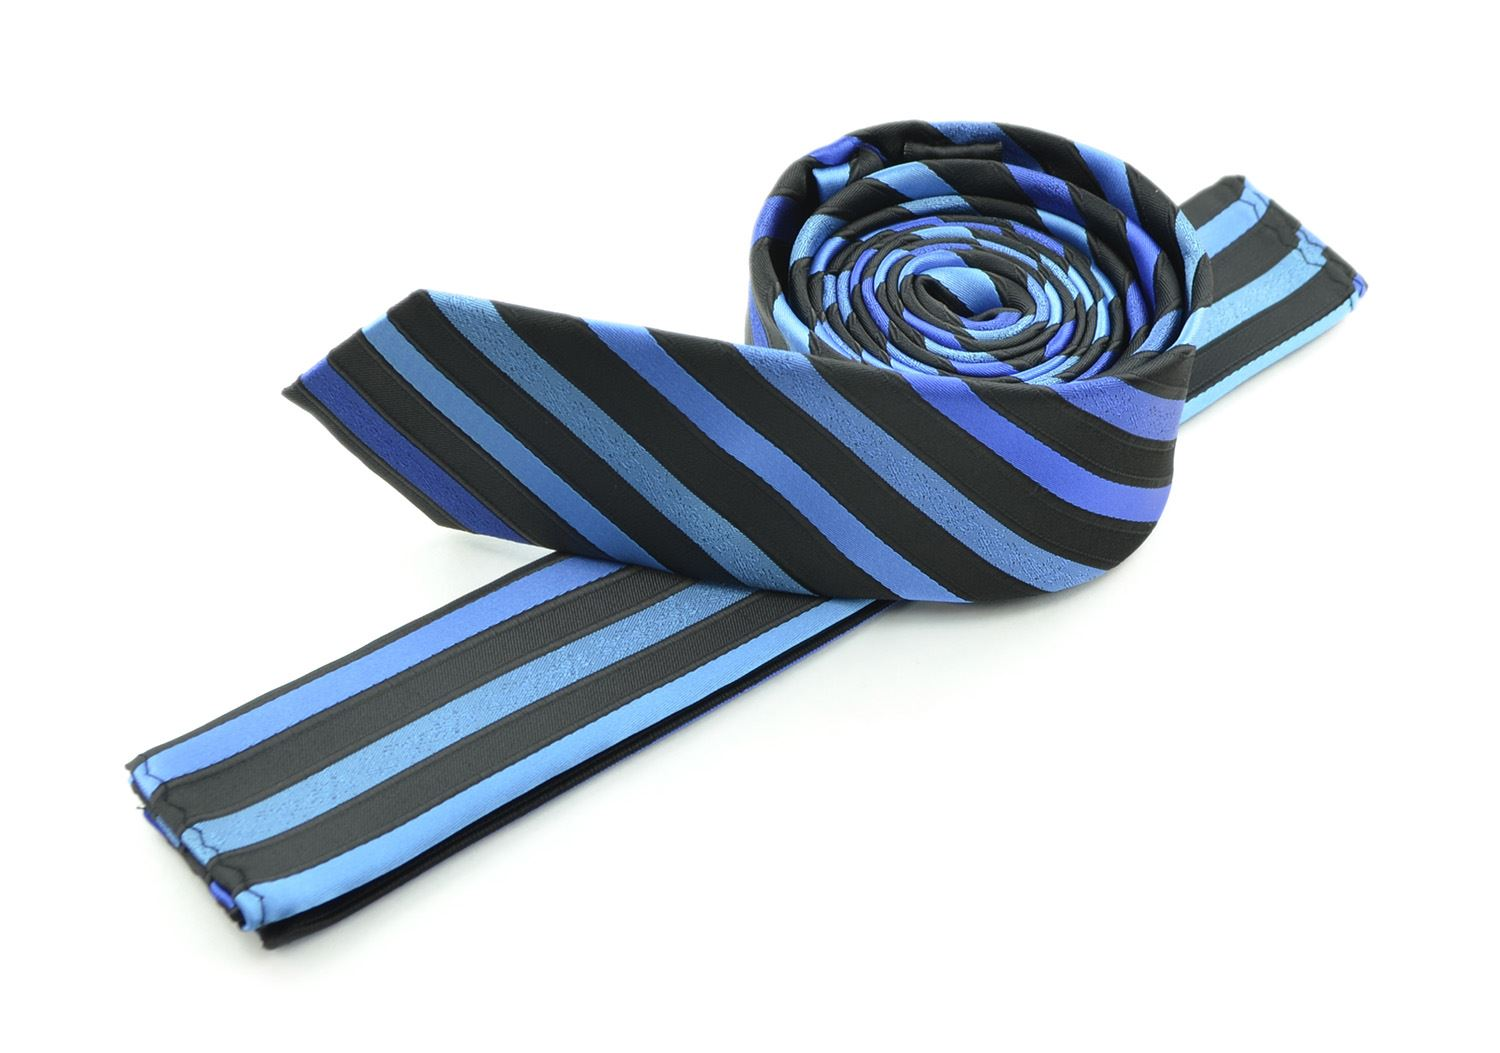 Moda Di Raza Men's Slanted Subtle Striped Ties Trendy Imported Fashion Necktie-Blue